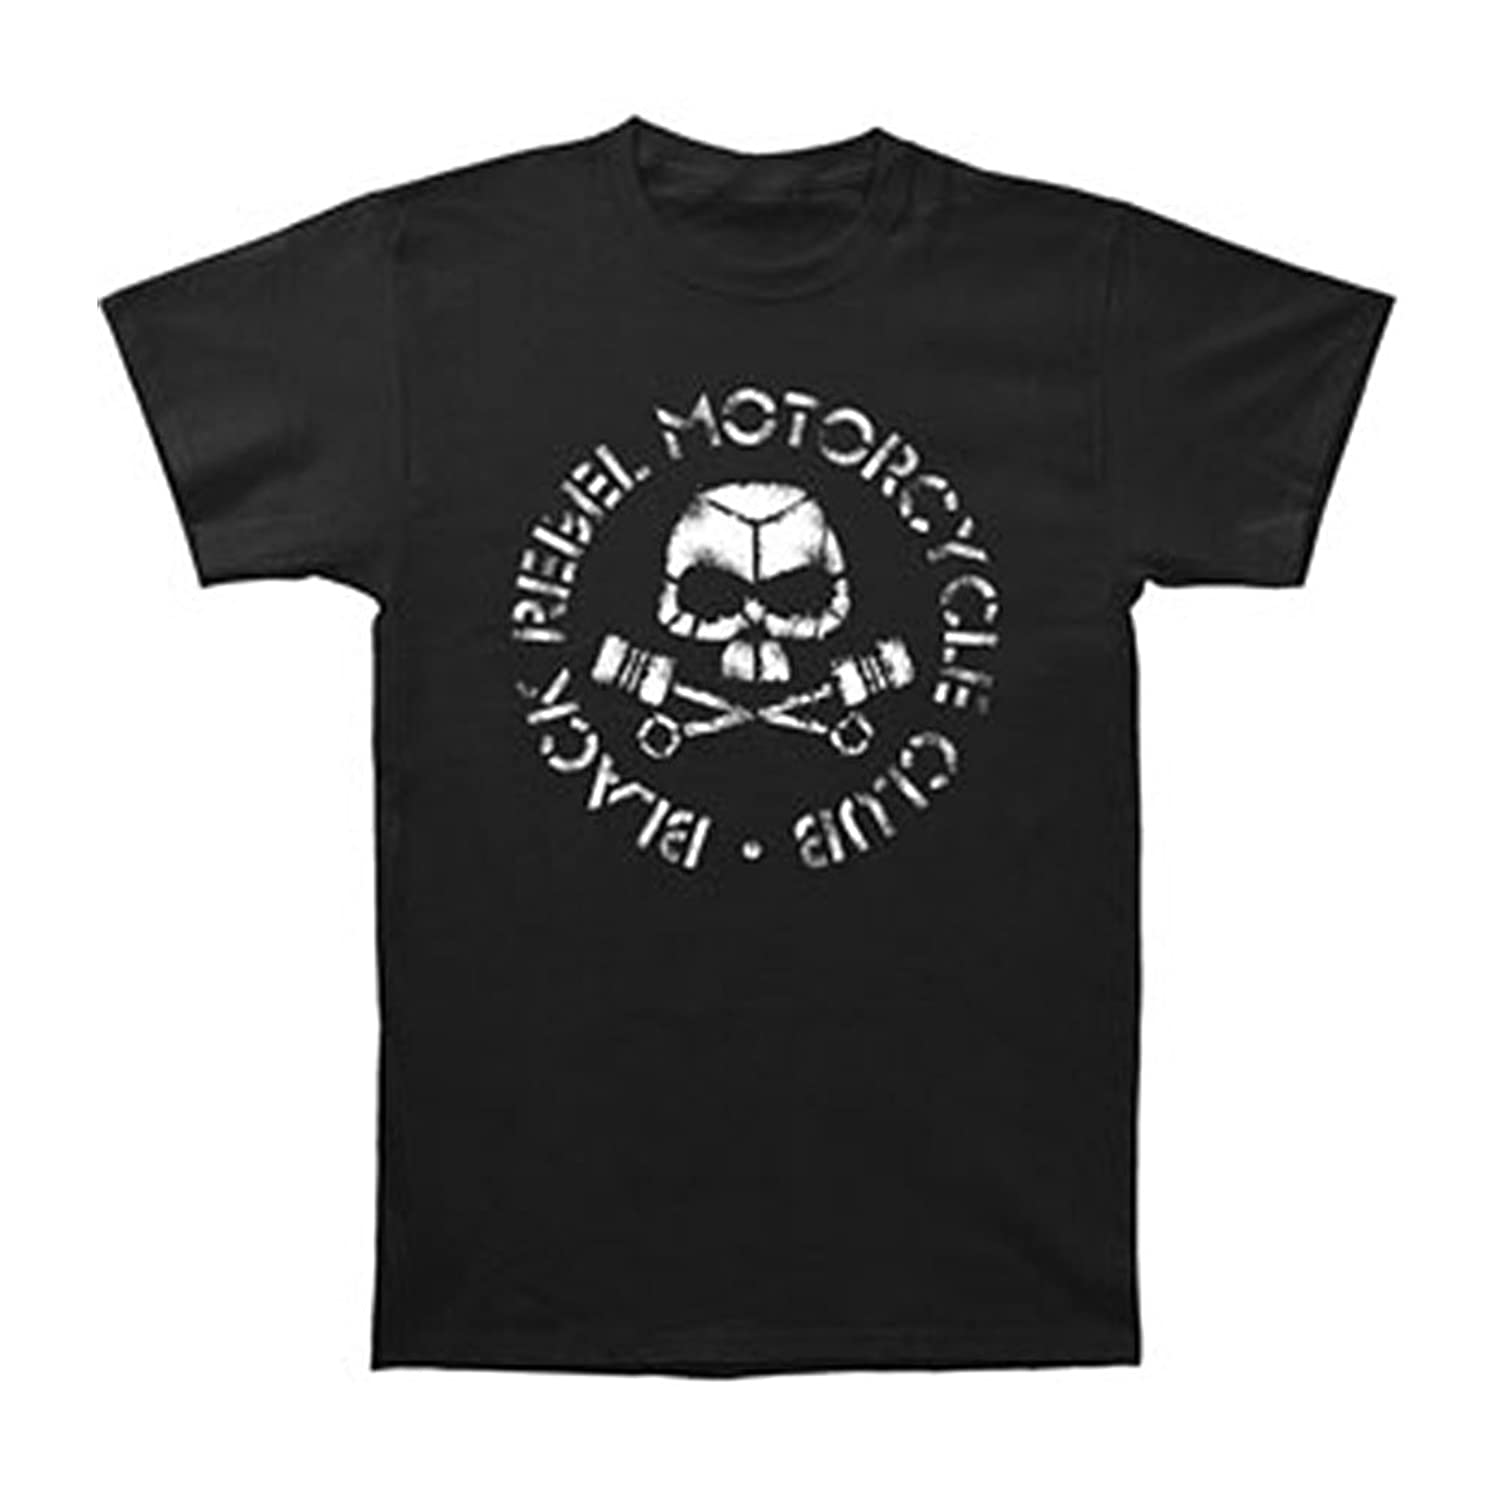 T shirt black rebel motorcycle club - Licensed Black Rebel Motorcycle Club Brmc Skull Piston Slim Fit T Shirt S Xl New Amazon Com